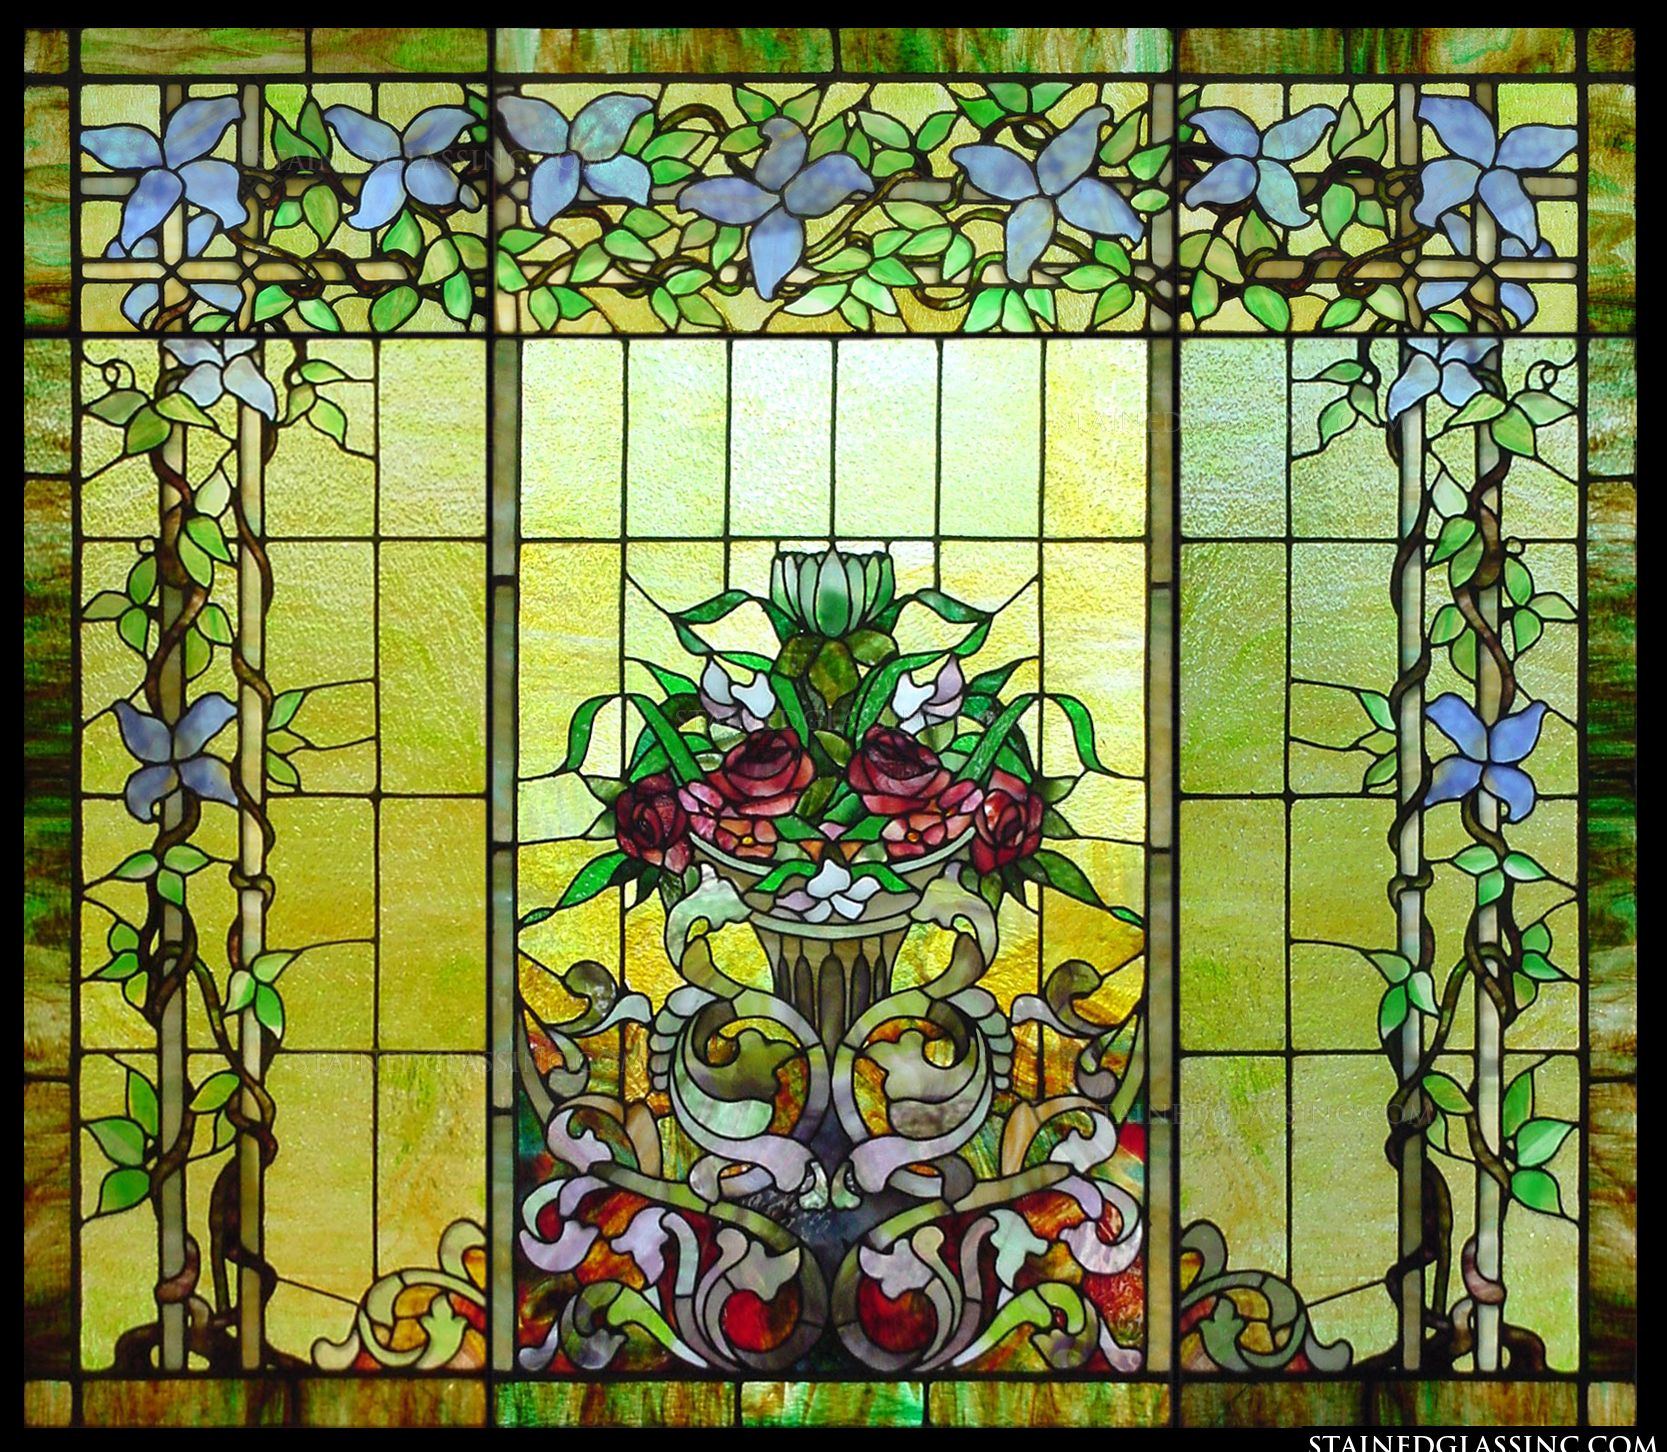 This Exquisite Stained Glass Window Panel Features Flowers And A Flowing Filigree Design Artwork Takes On The Classic Look Of Antique